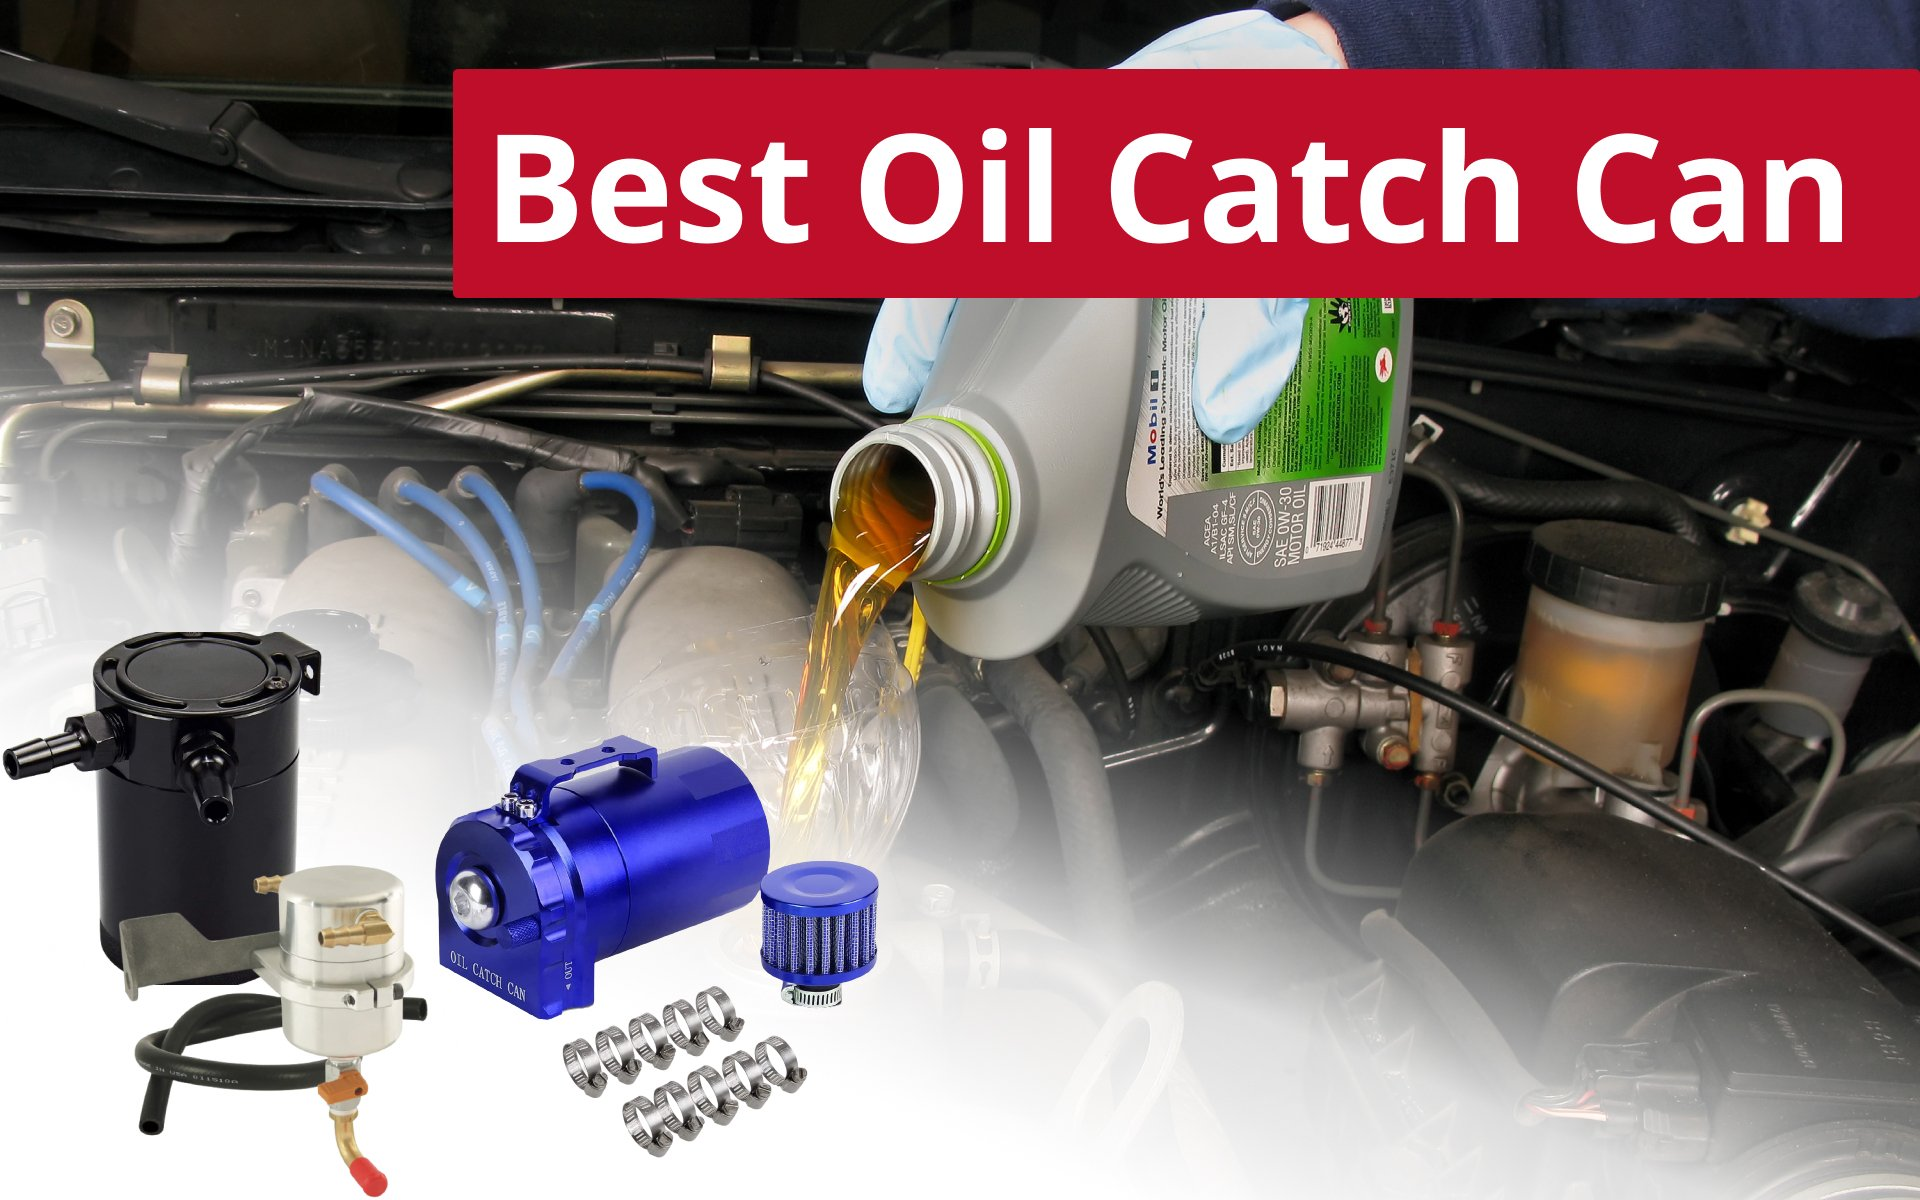 Best Oil Catch Can: image